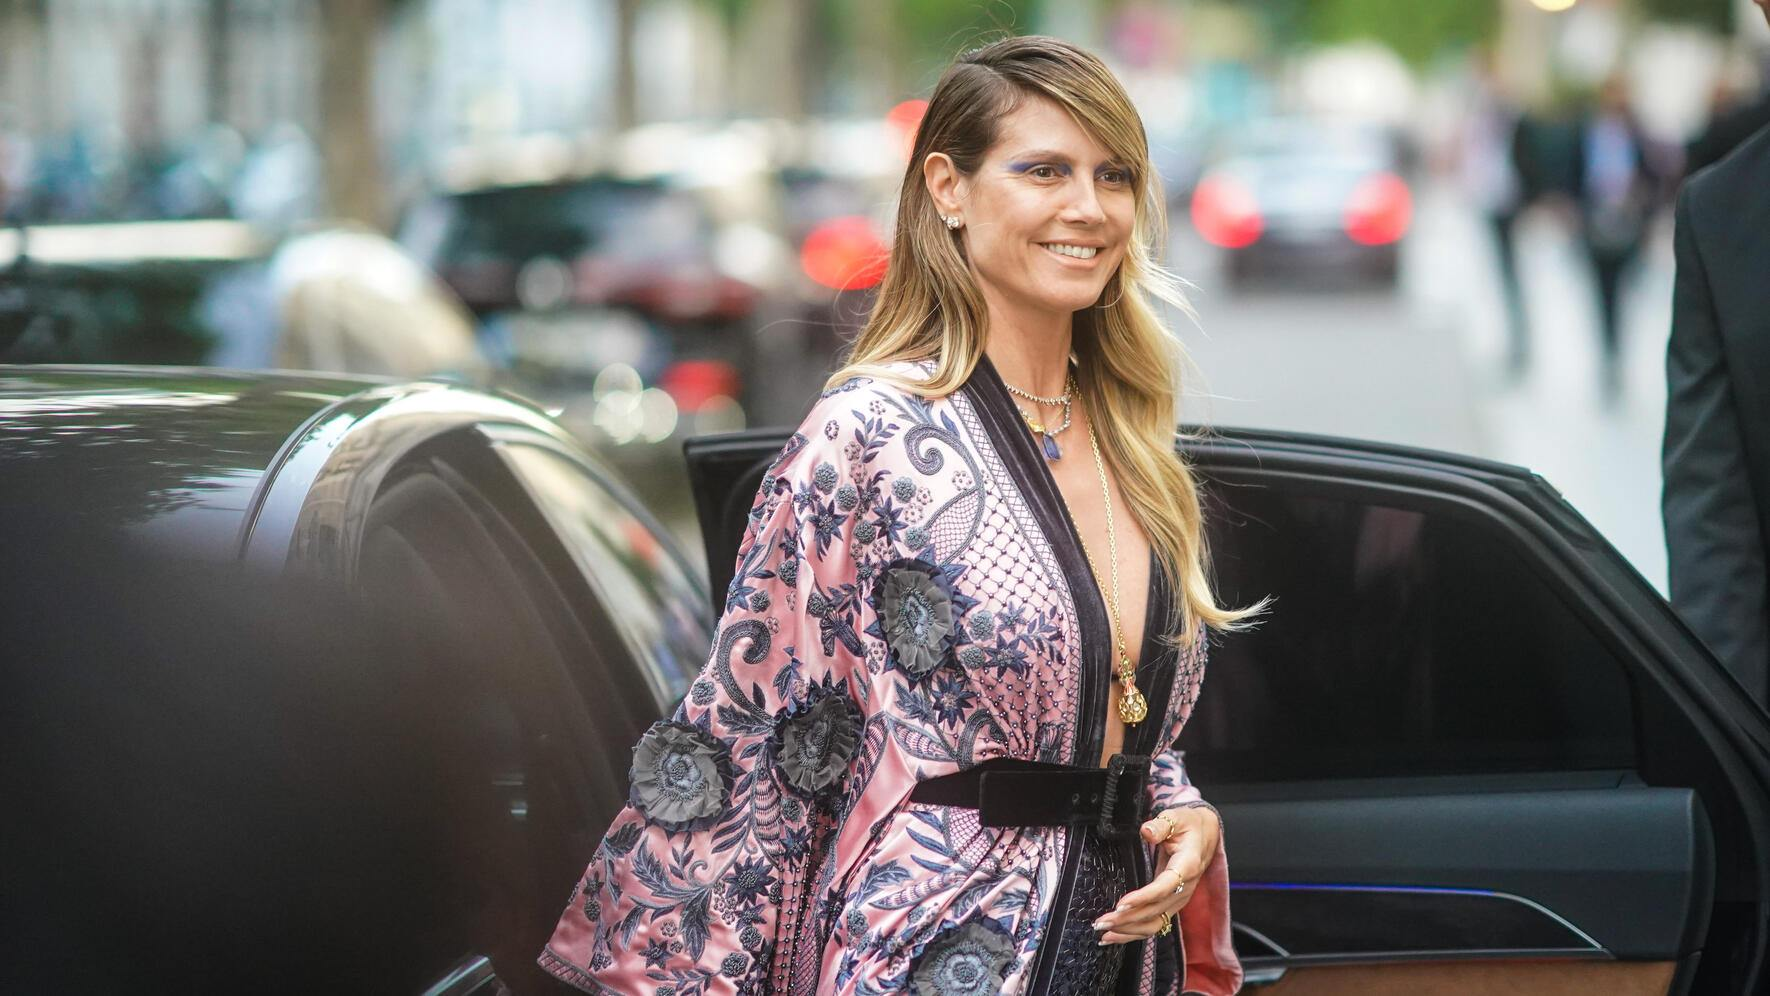 PARIS, FRANCE - JUNE 30: Heidi Klum wears earrings, necklaces, a lustrous beaded and embroidered floral print pale-pink kimono-style long jacket, a black velvet belt, nacreous sequined deep blue  pants, outside AMFAR dinner, during Paris Fashion Week - Haute Couture Fall/Winter 2019/2020, on June 30, 2019 in Paris, France. (Photo by Edward Berthelot/Getty Images)